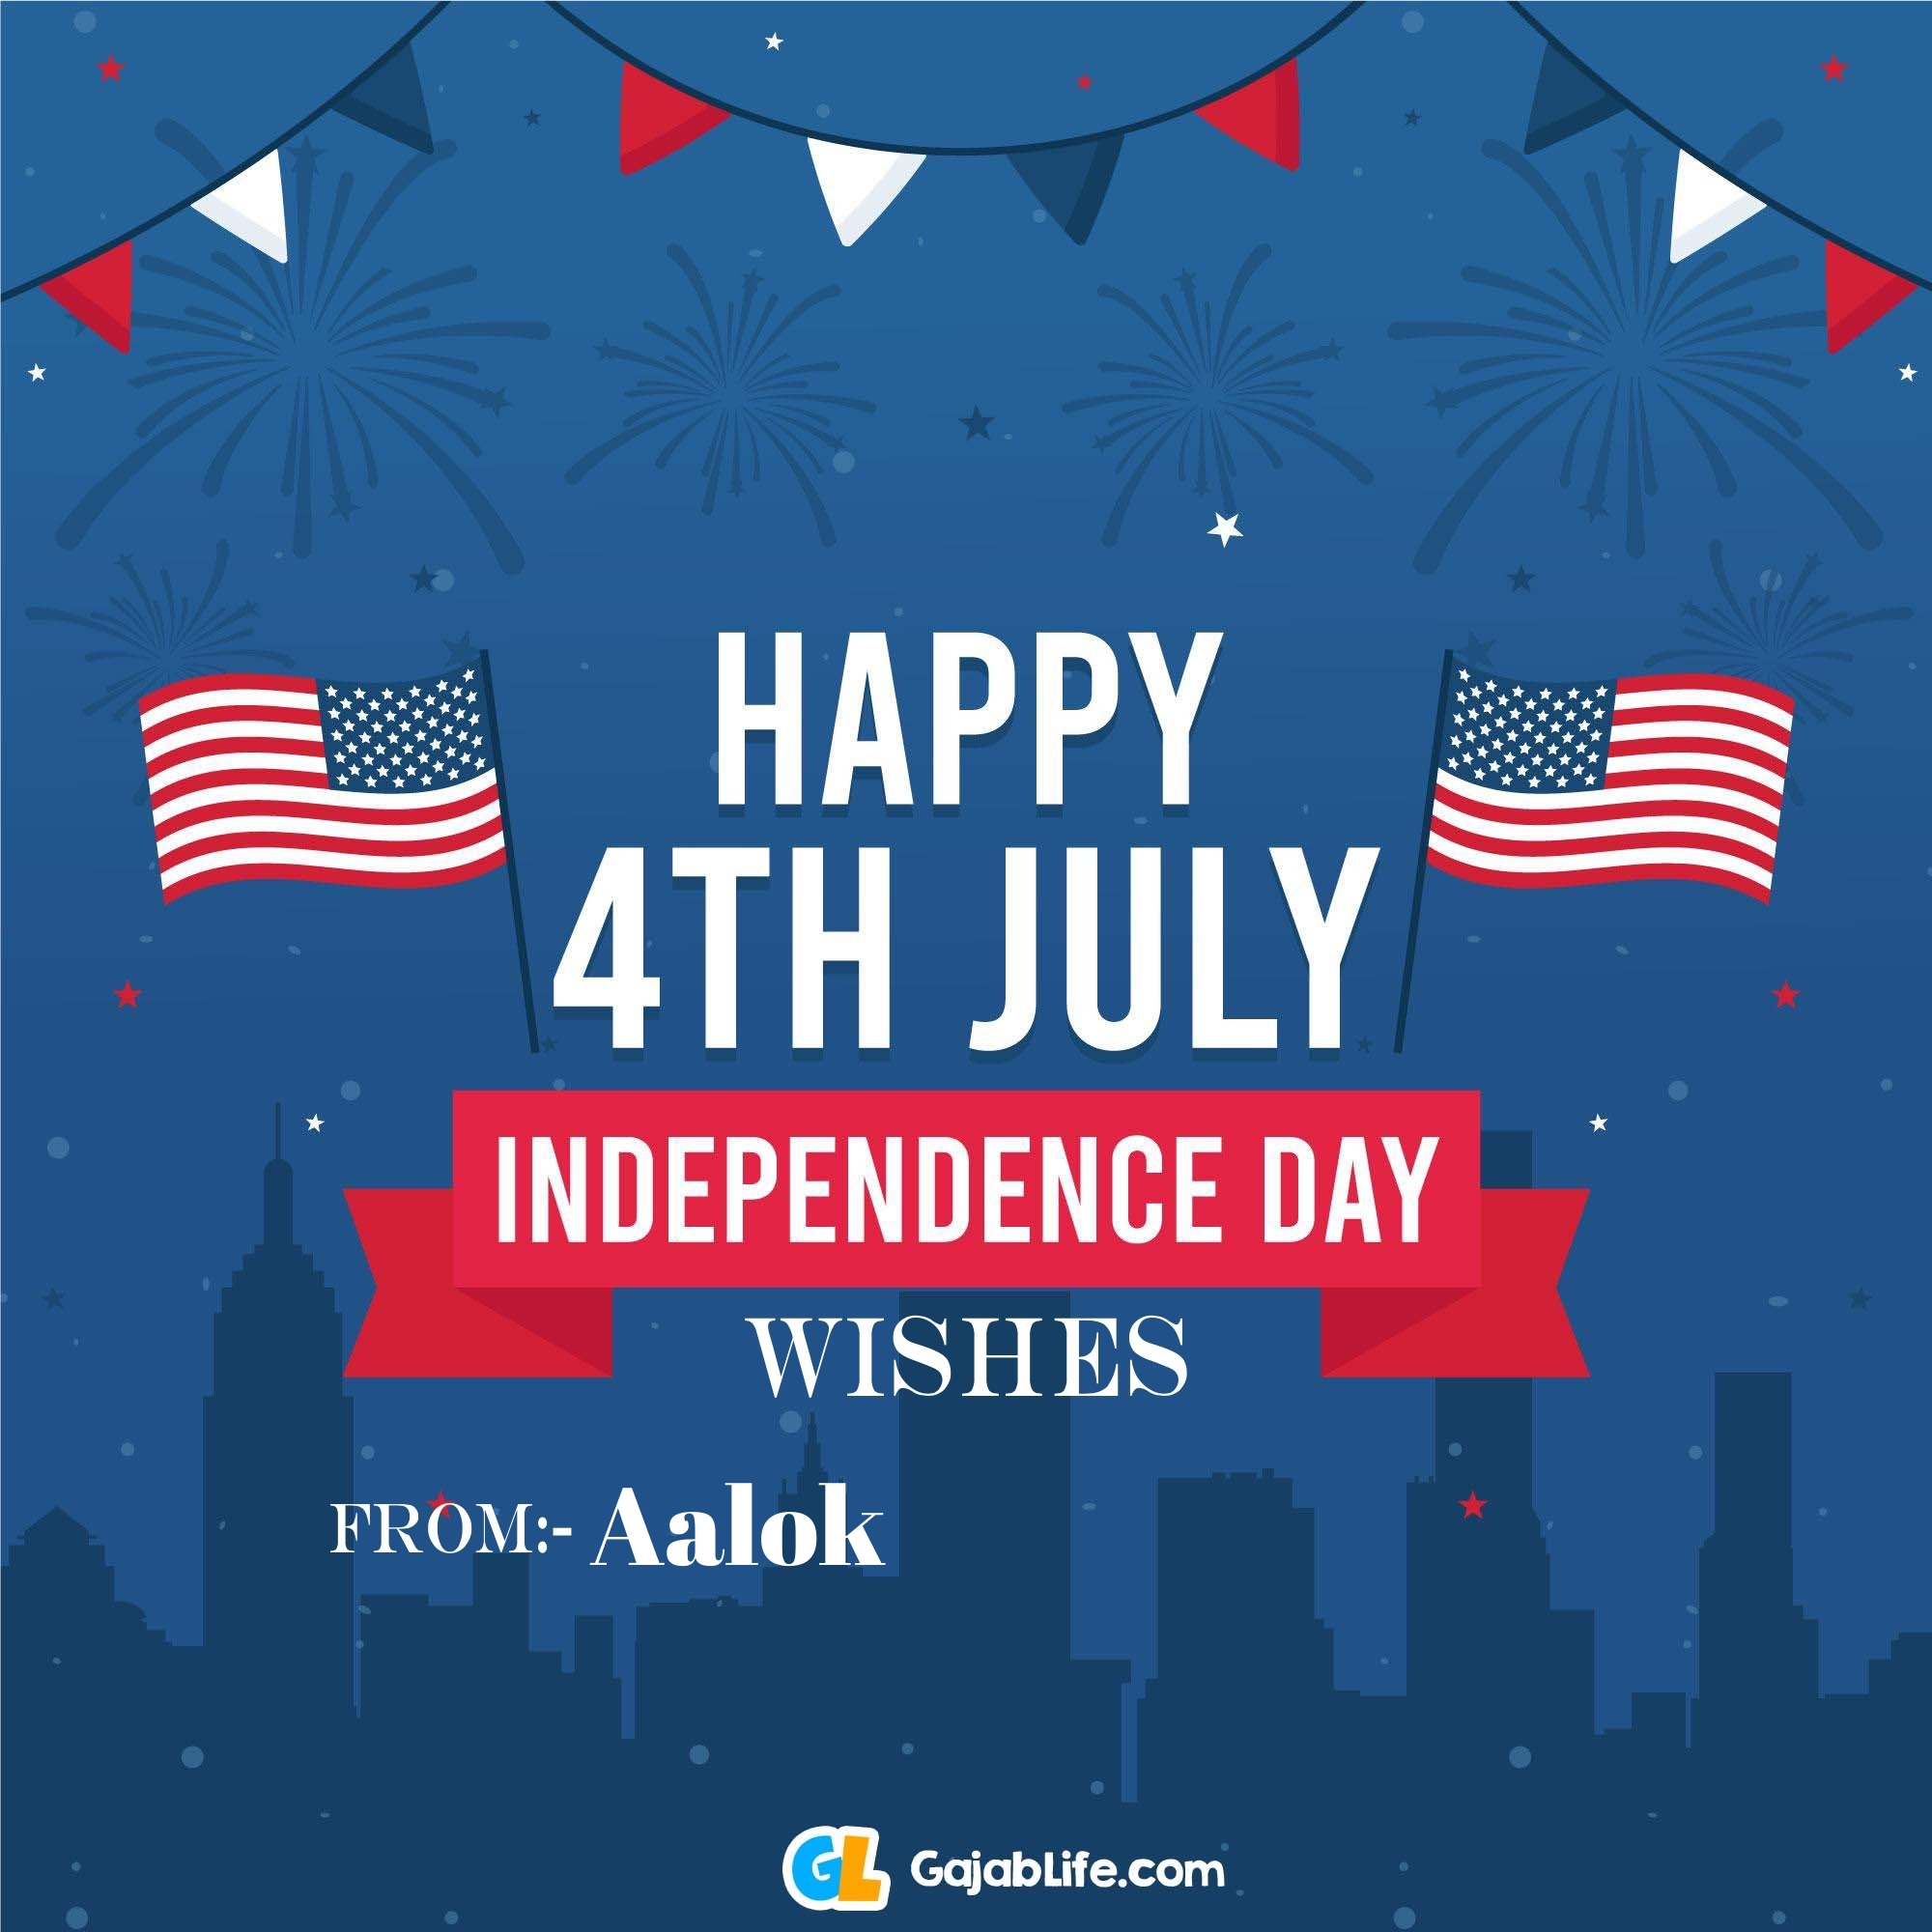 Aalok happy independence day united states of america images